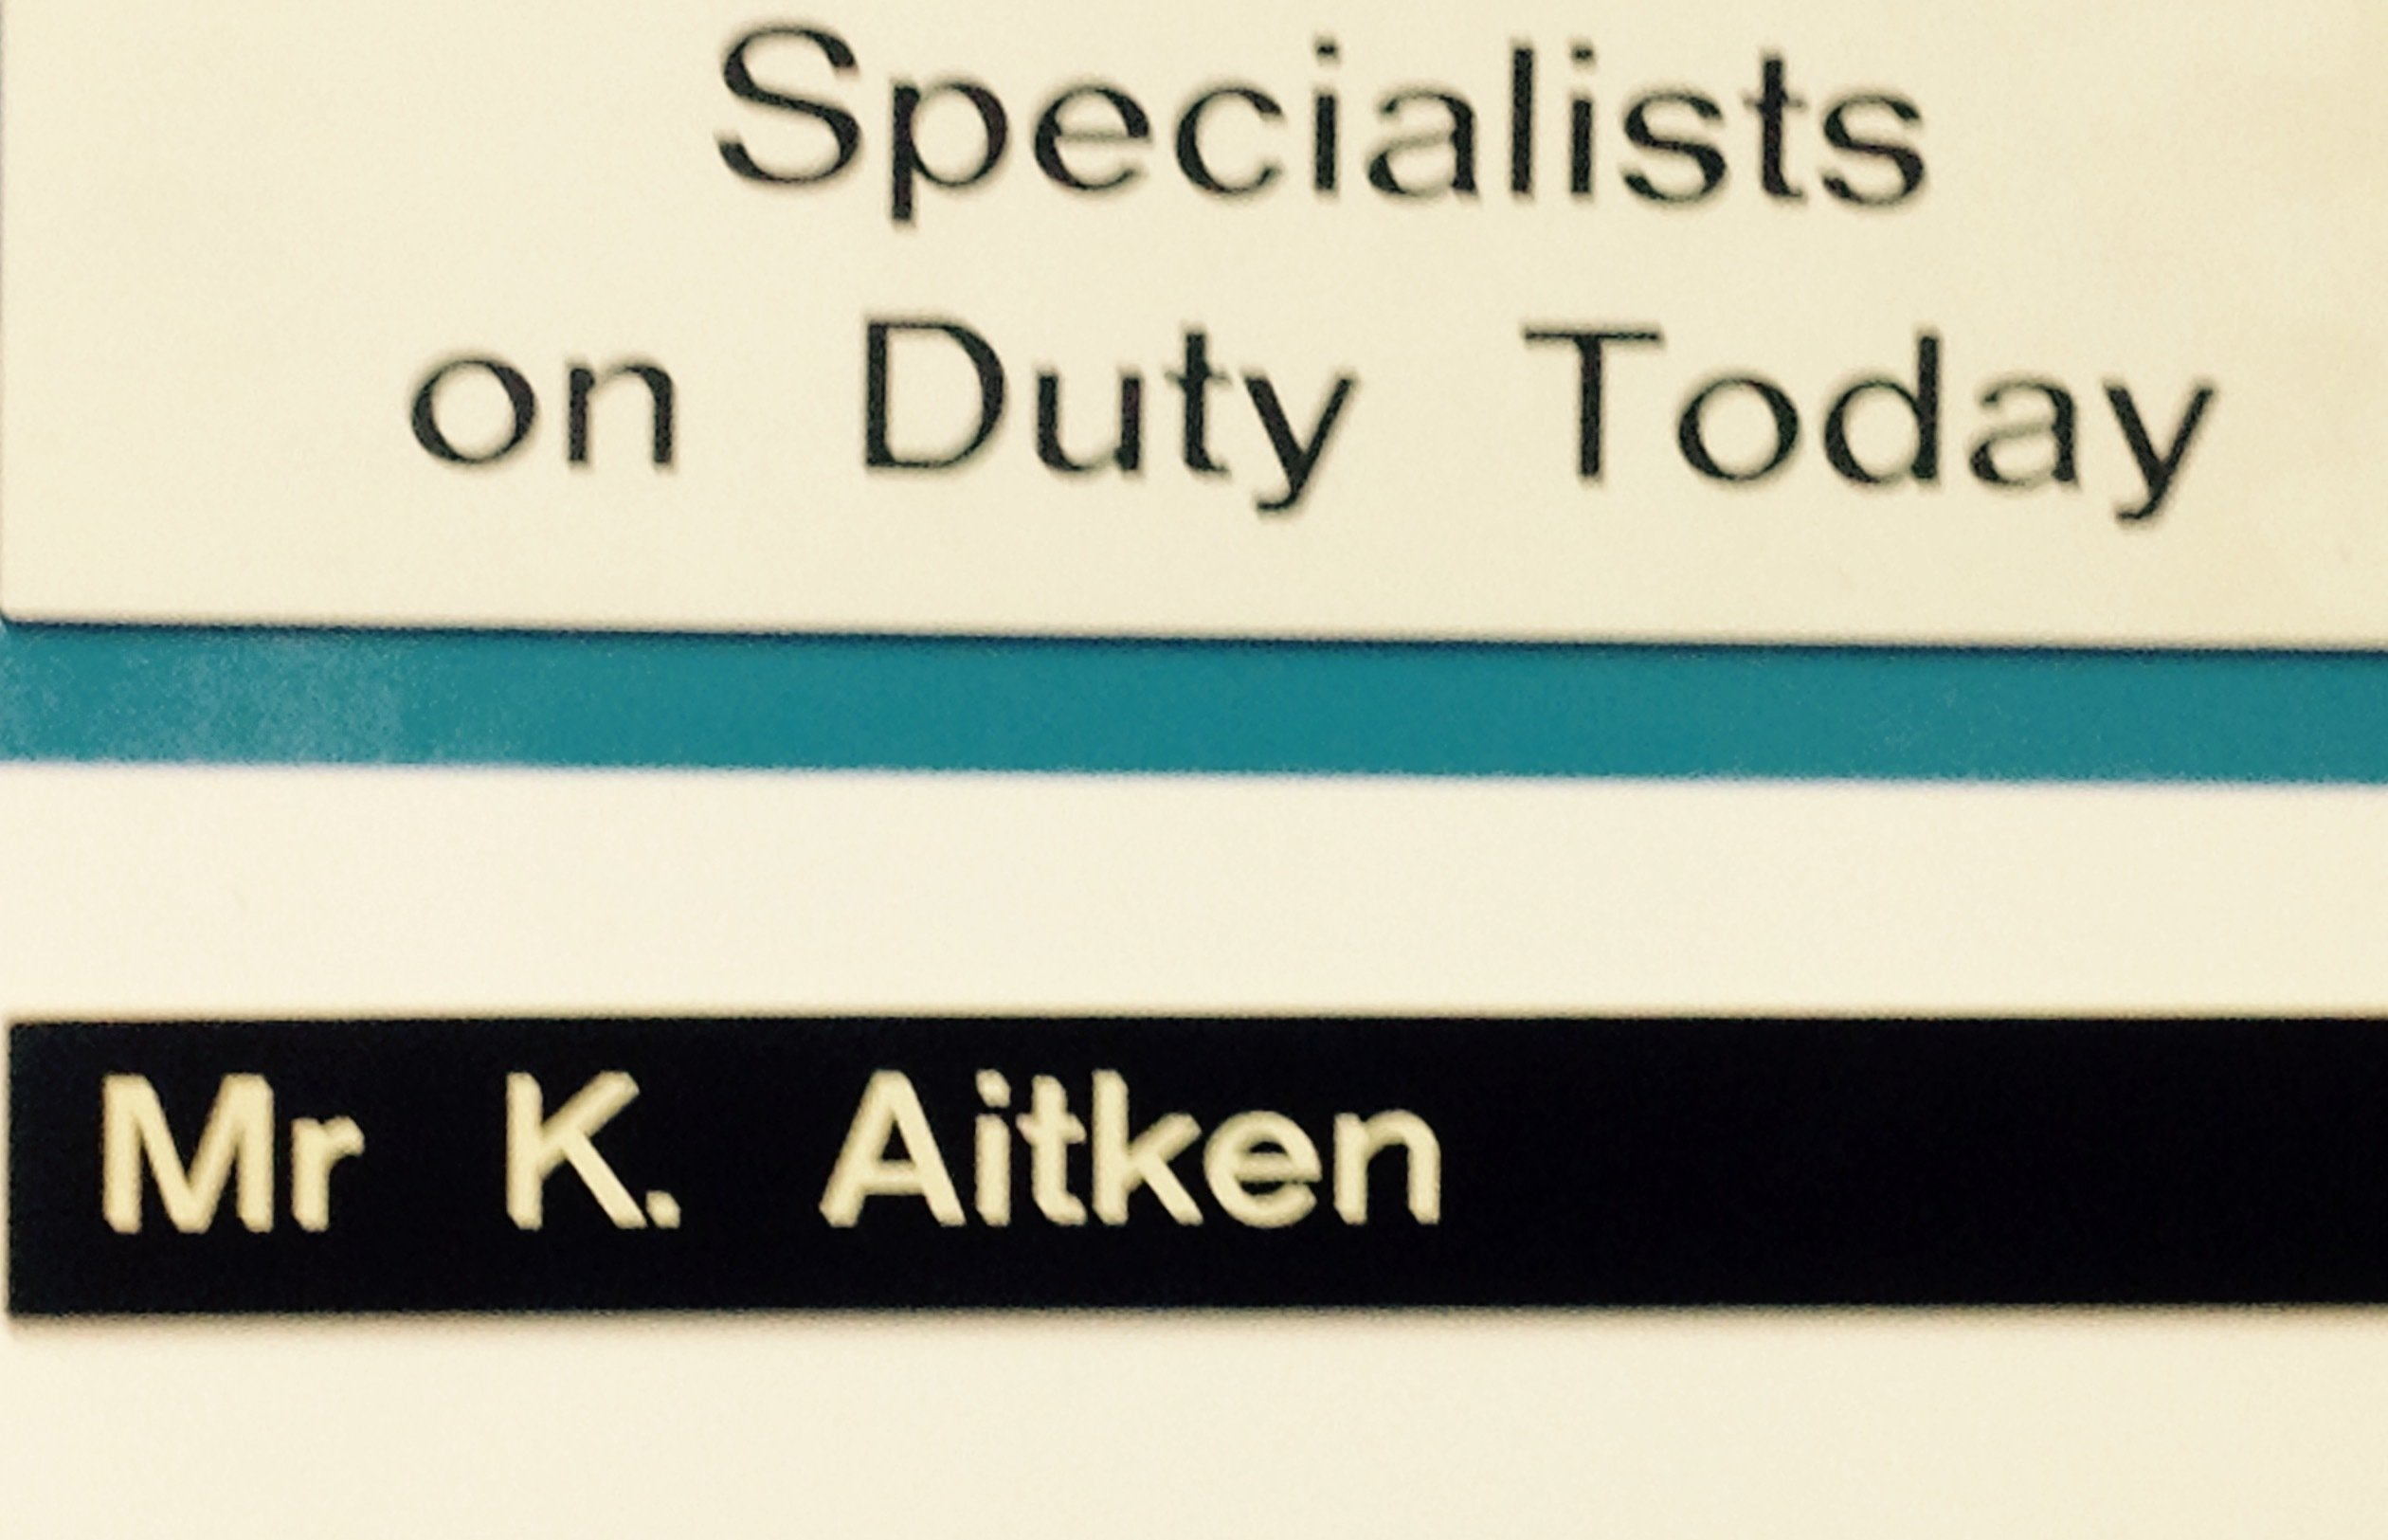 Image of door sign at Mr K. Aitkens office in Palmerston North